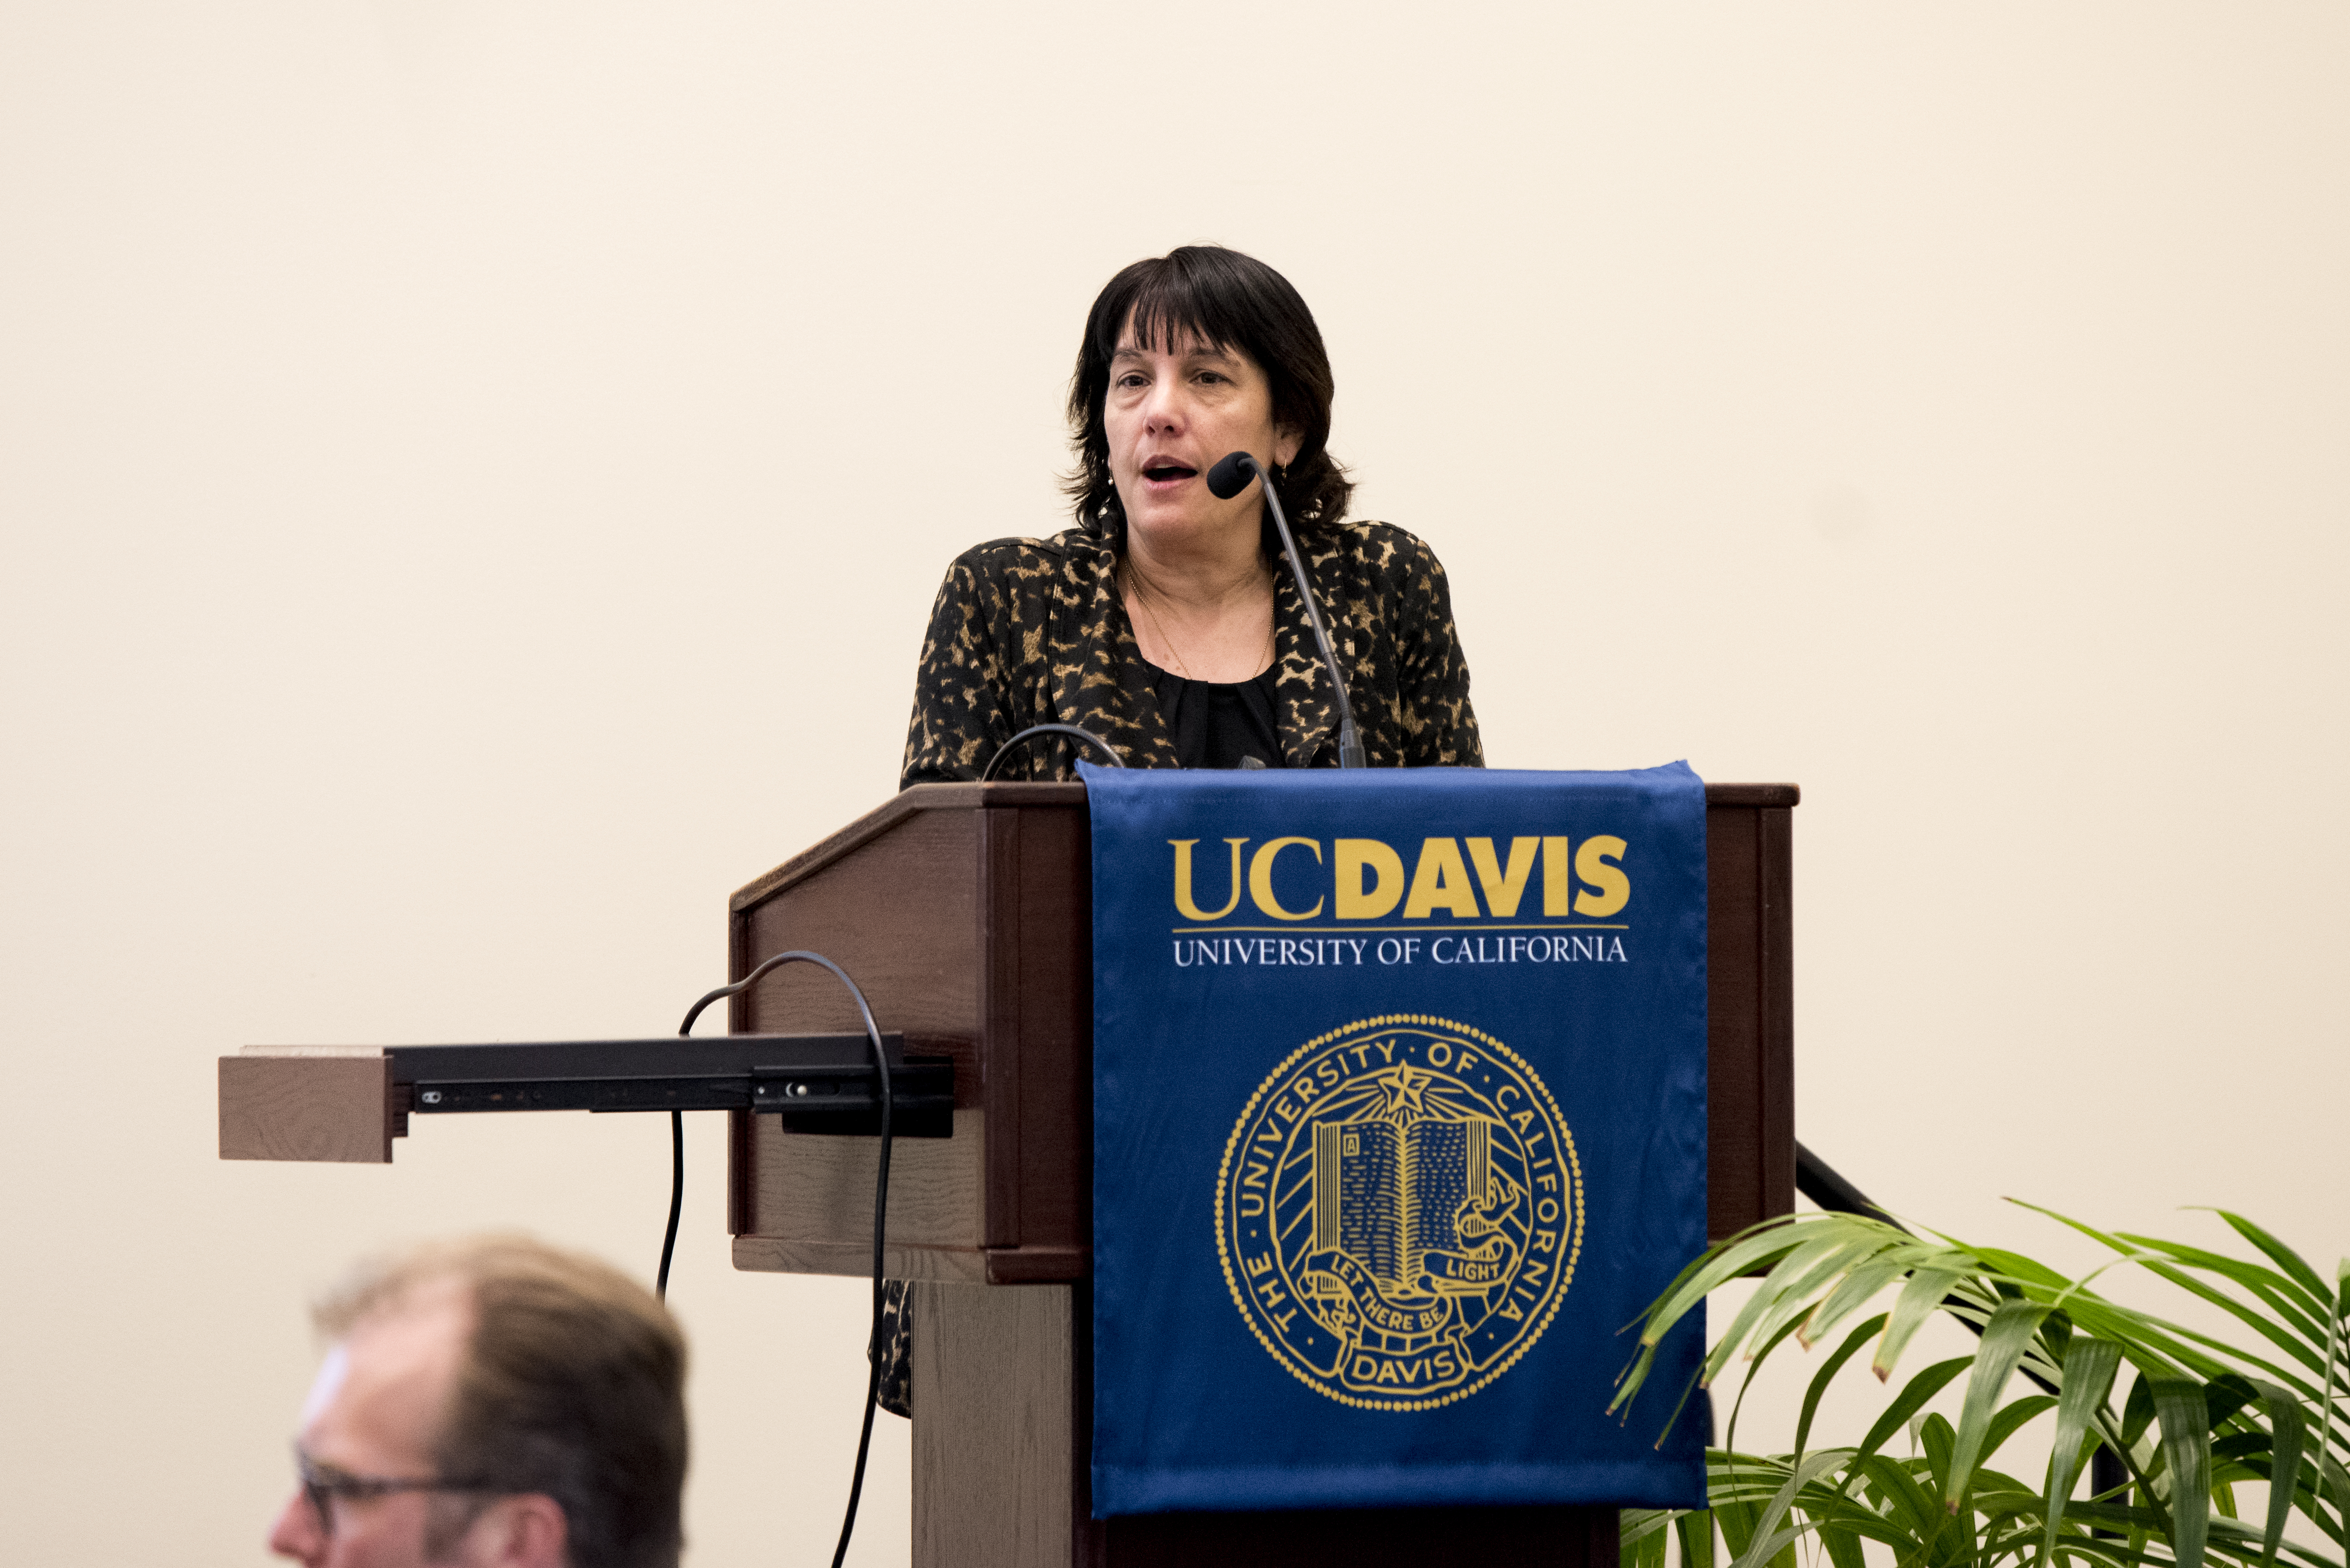 Dr. Sheila David, Professor of Chemistry and Chair, Miller Symposium Committee